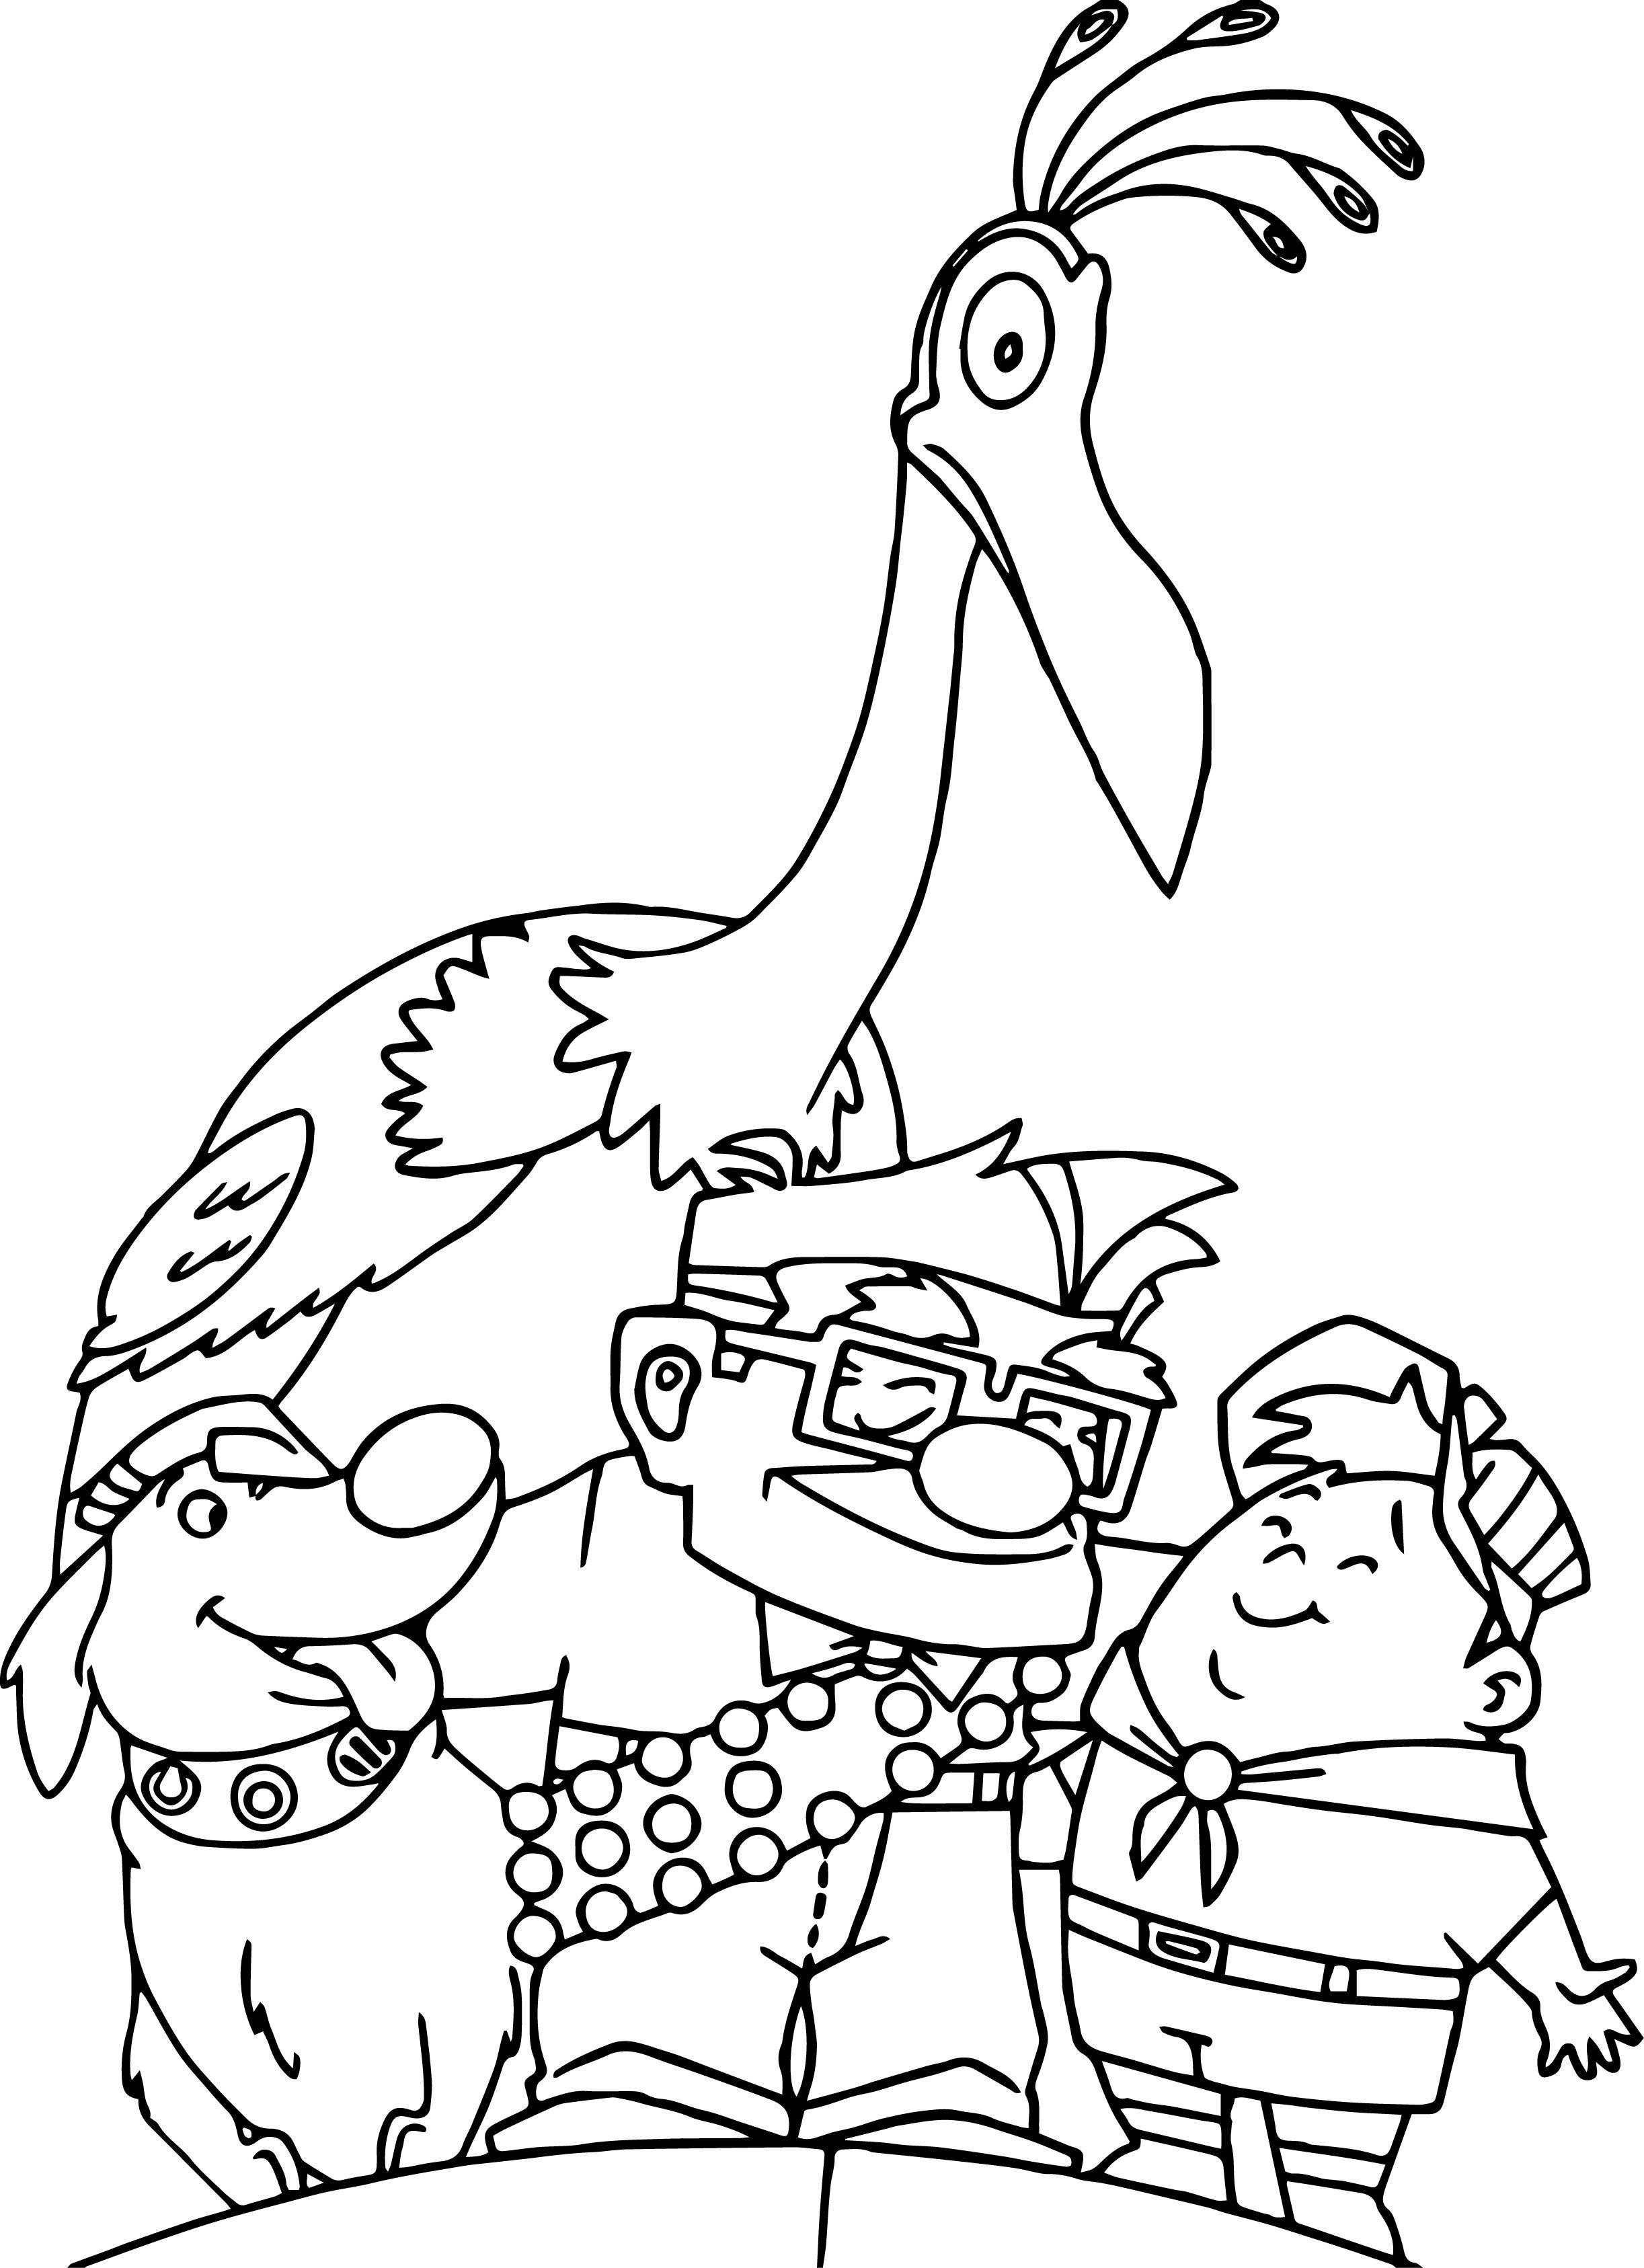 Disney Pixar Up Coloring Pages Disney Coloring Pages Cartoon